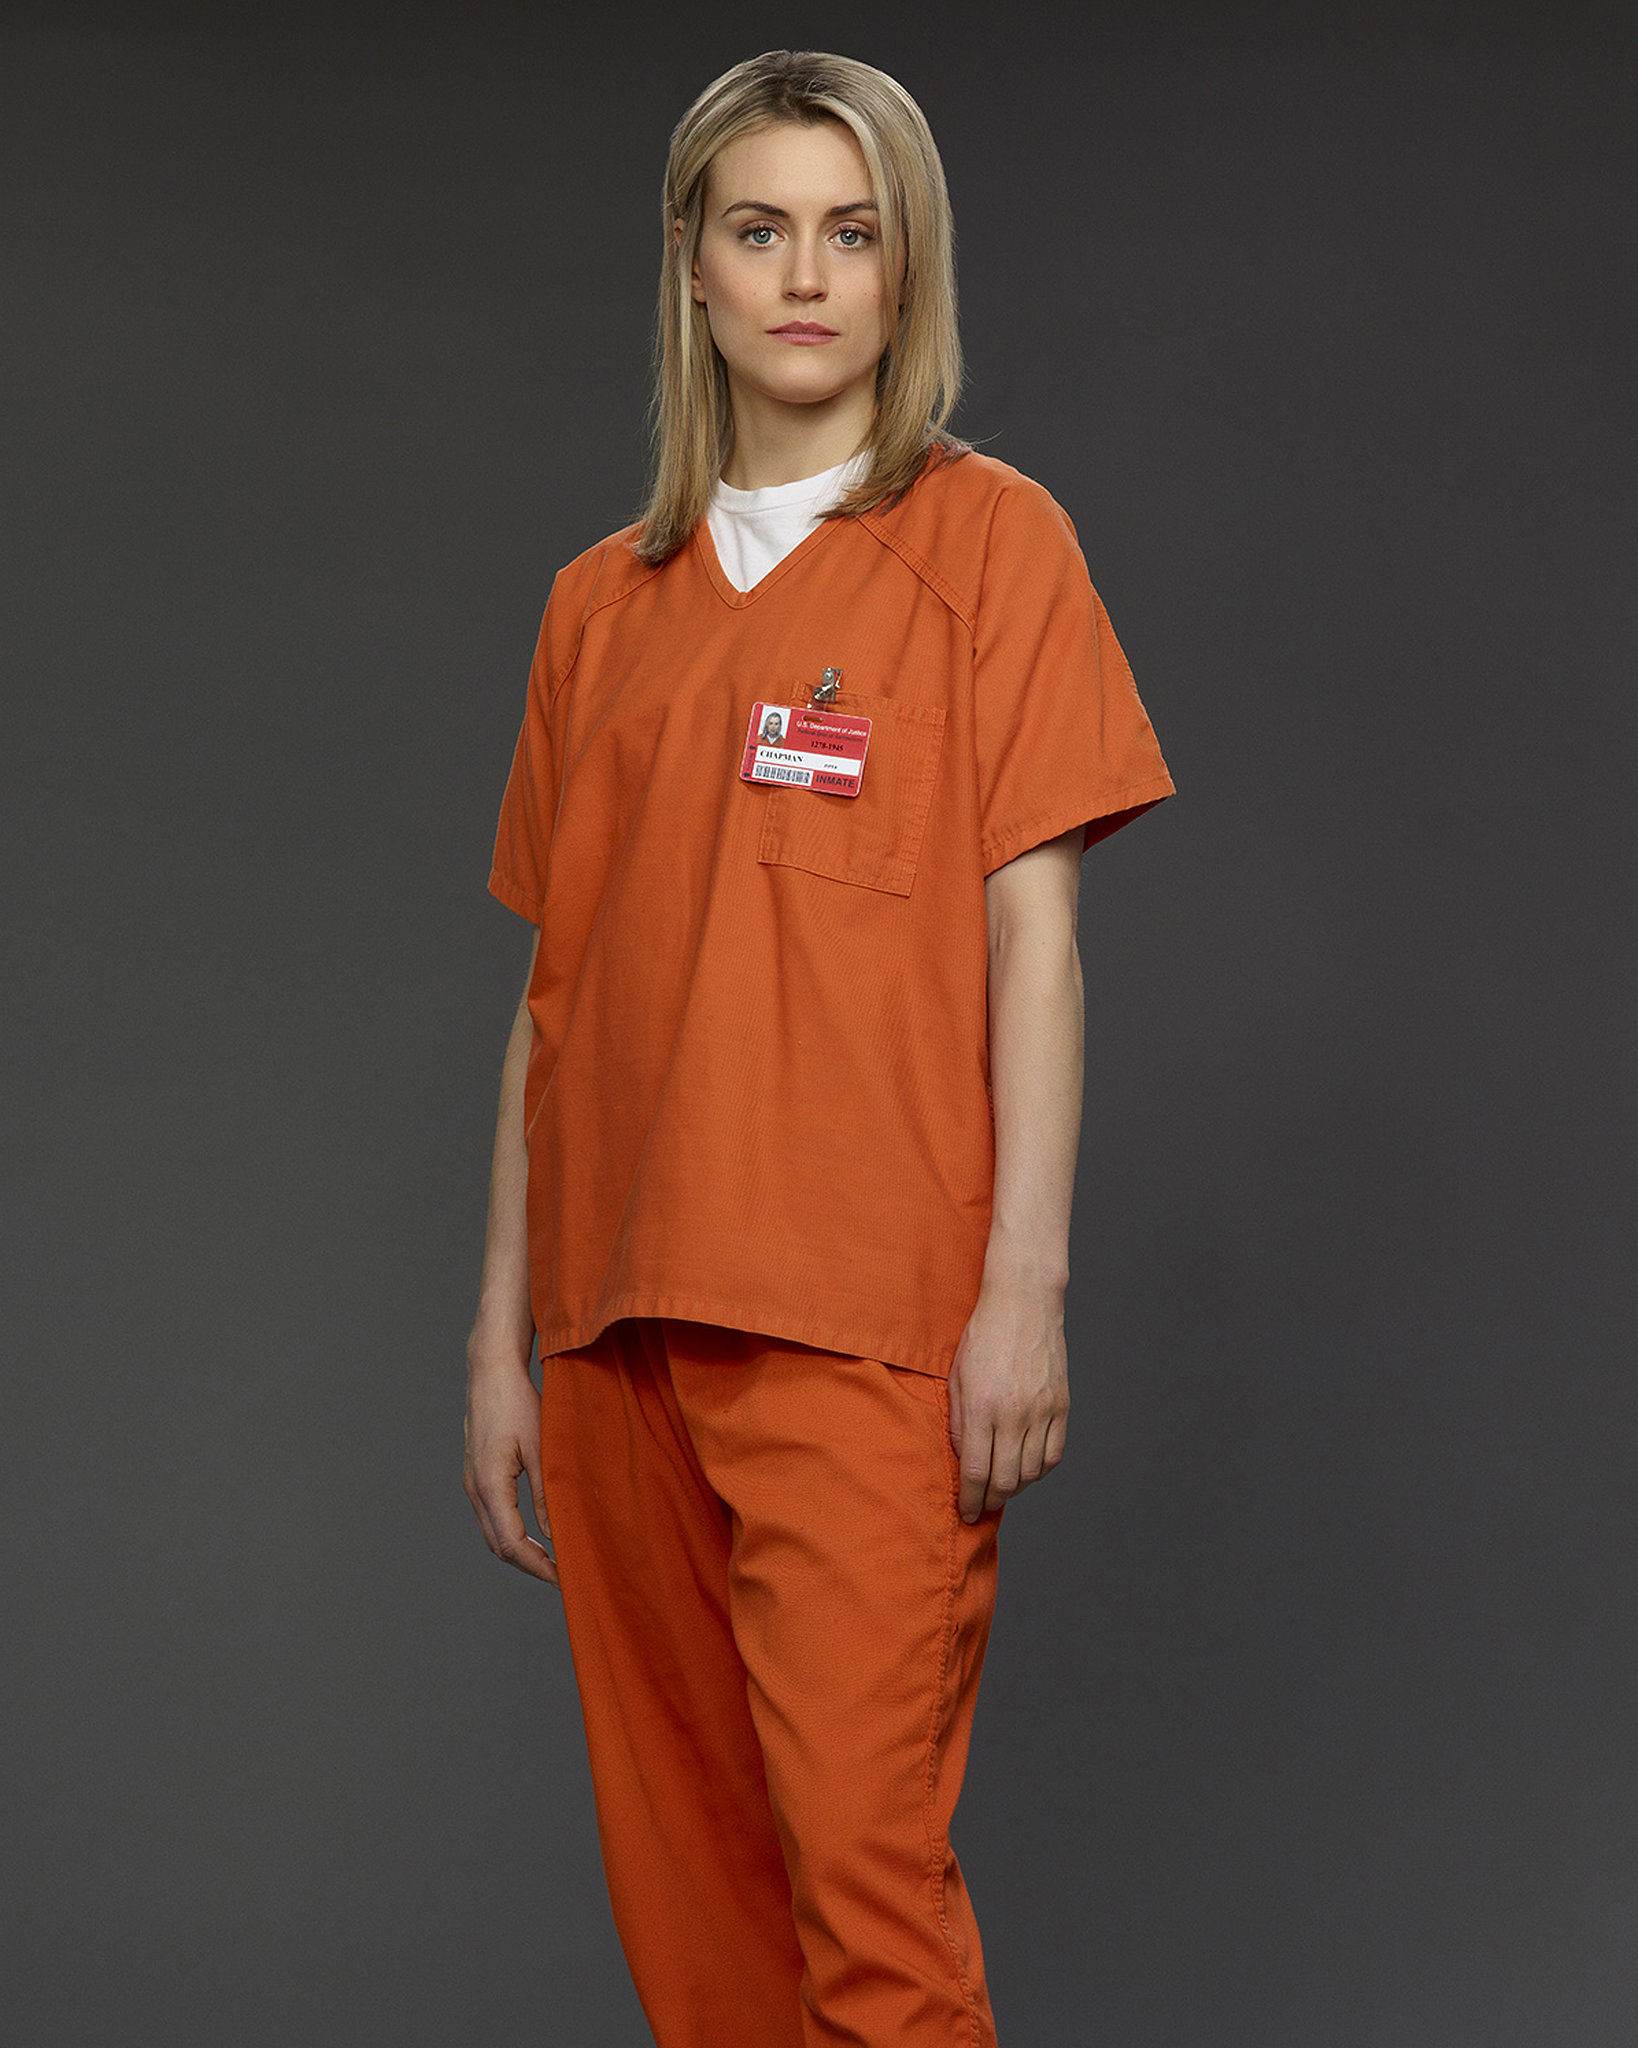 Piper From Orange Is the New Black | 450 Pop Culture ...